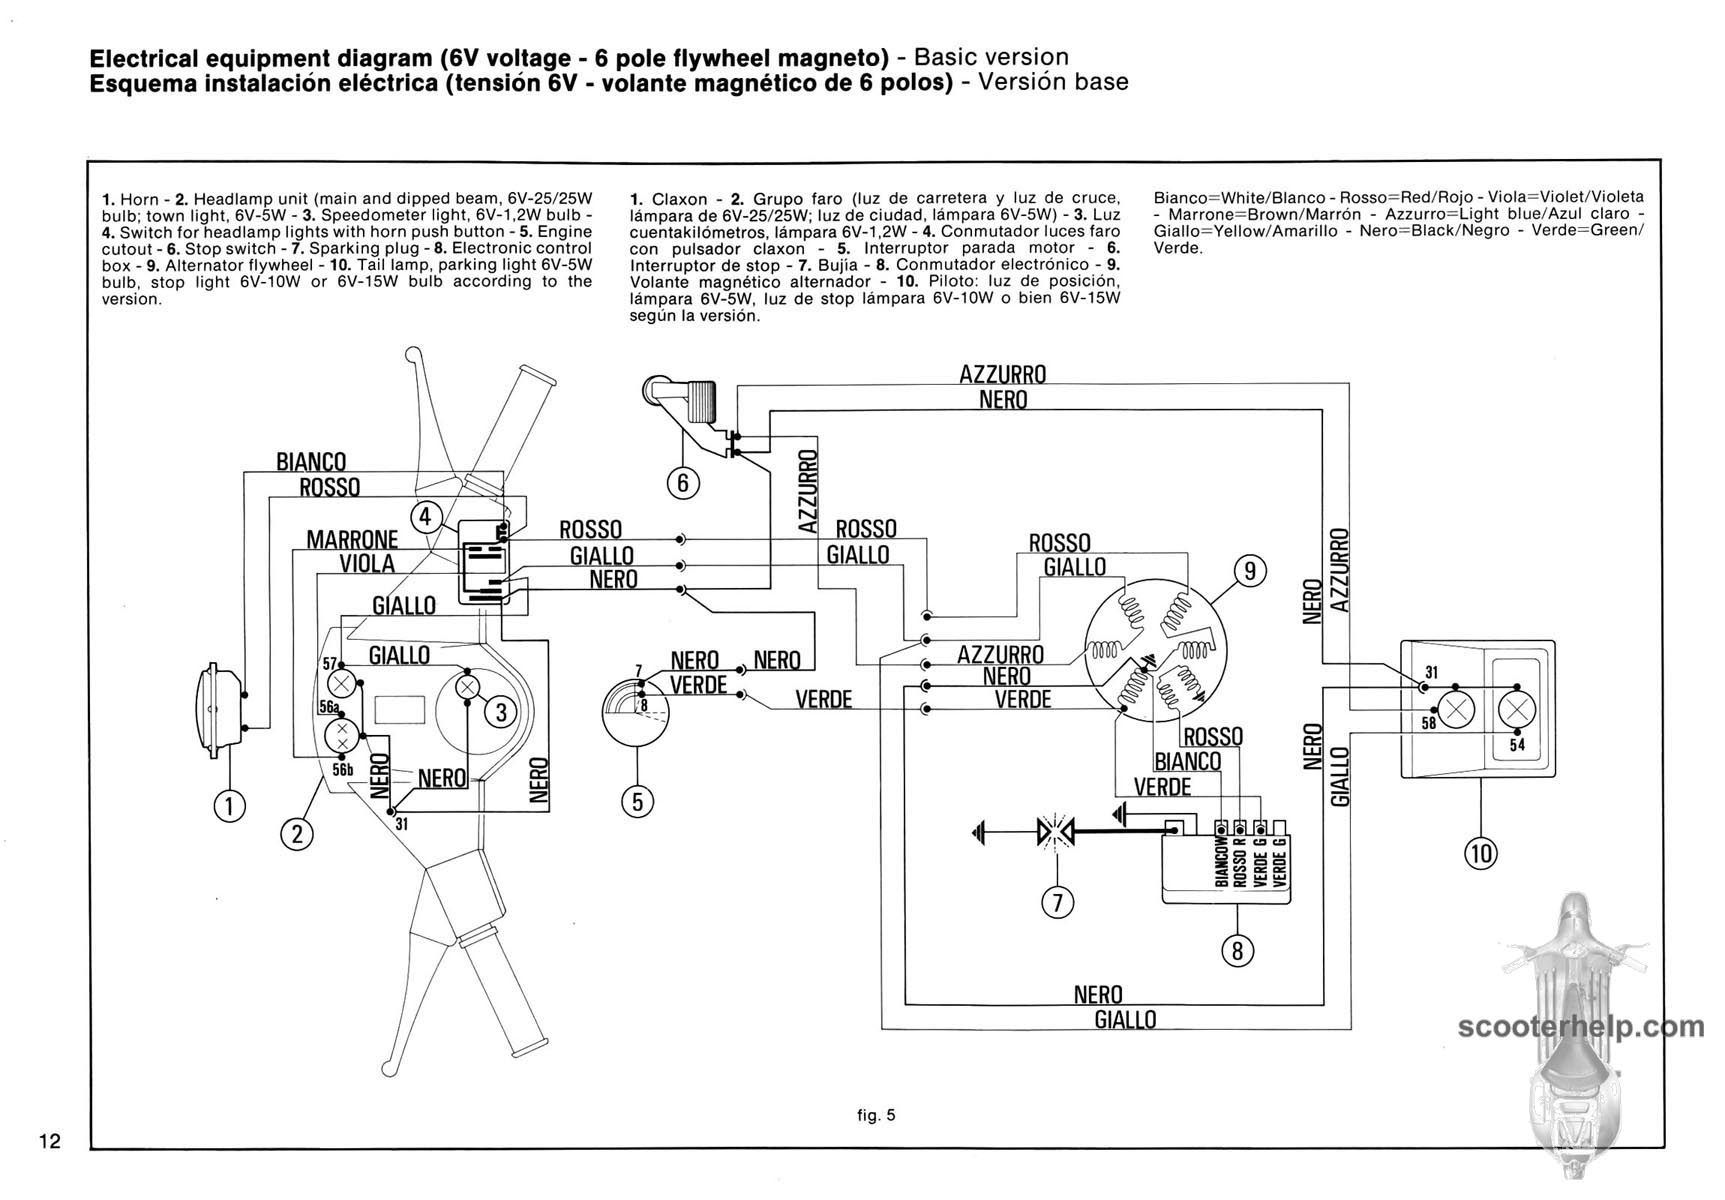 Pk Factory Repair Manual 56 Vespa Scooter Wiring Schematic If You Prefer A Pdf File Of All The Pages Click Here For 149mb Download